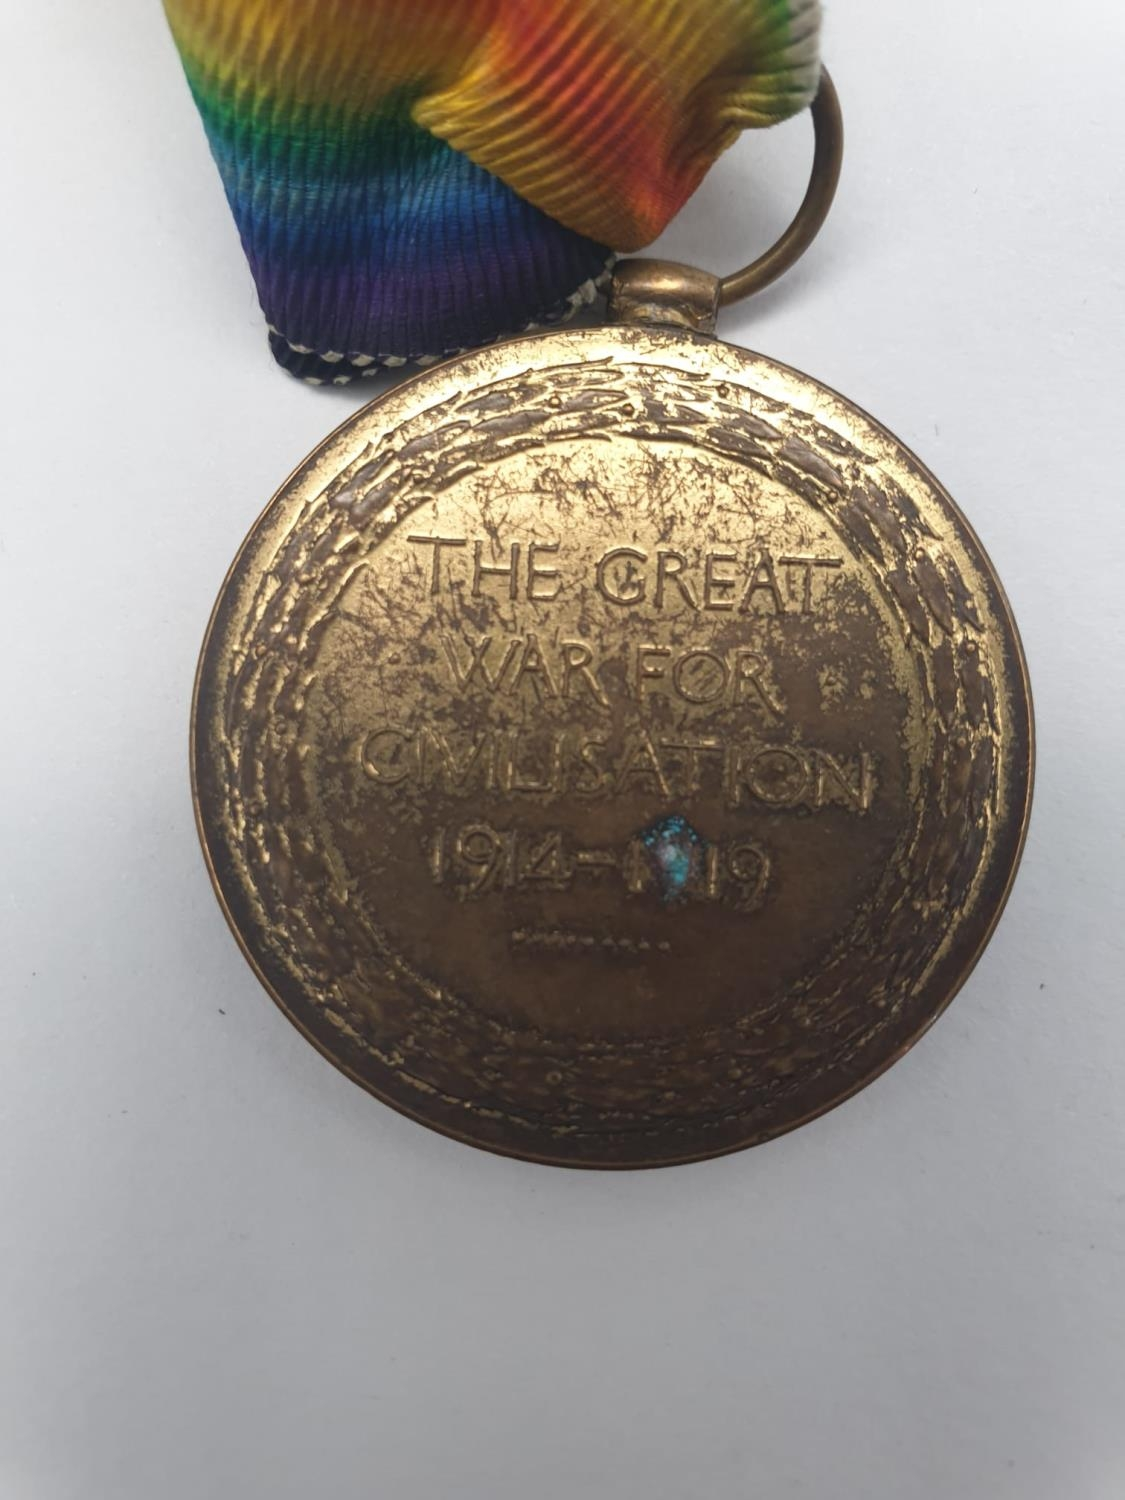 THE GREAT WAR FOR CIVILISATION 1914-18 MEDAL PRESENTED TO DVR J BERRY ROYAL ARTILLERY WITH - Image 3 of 7